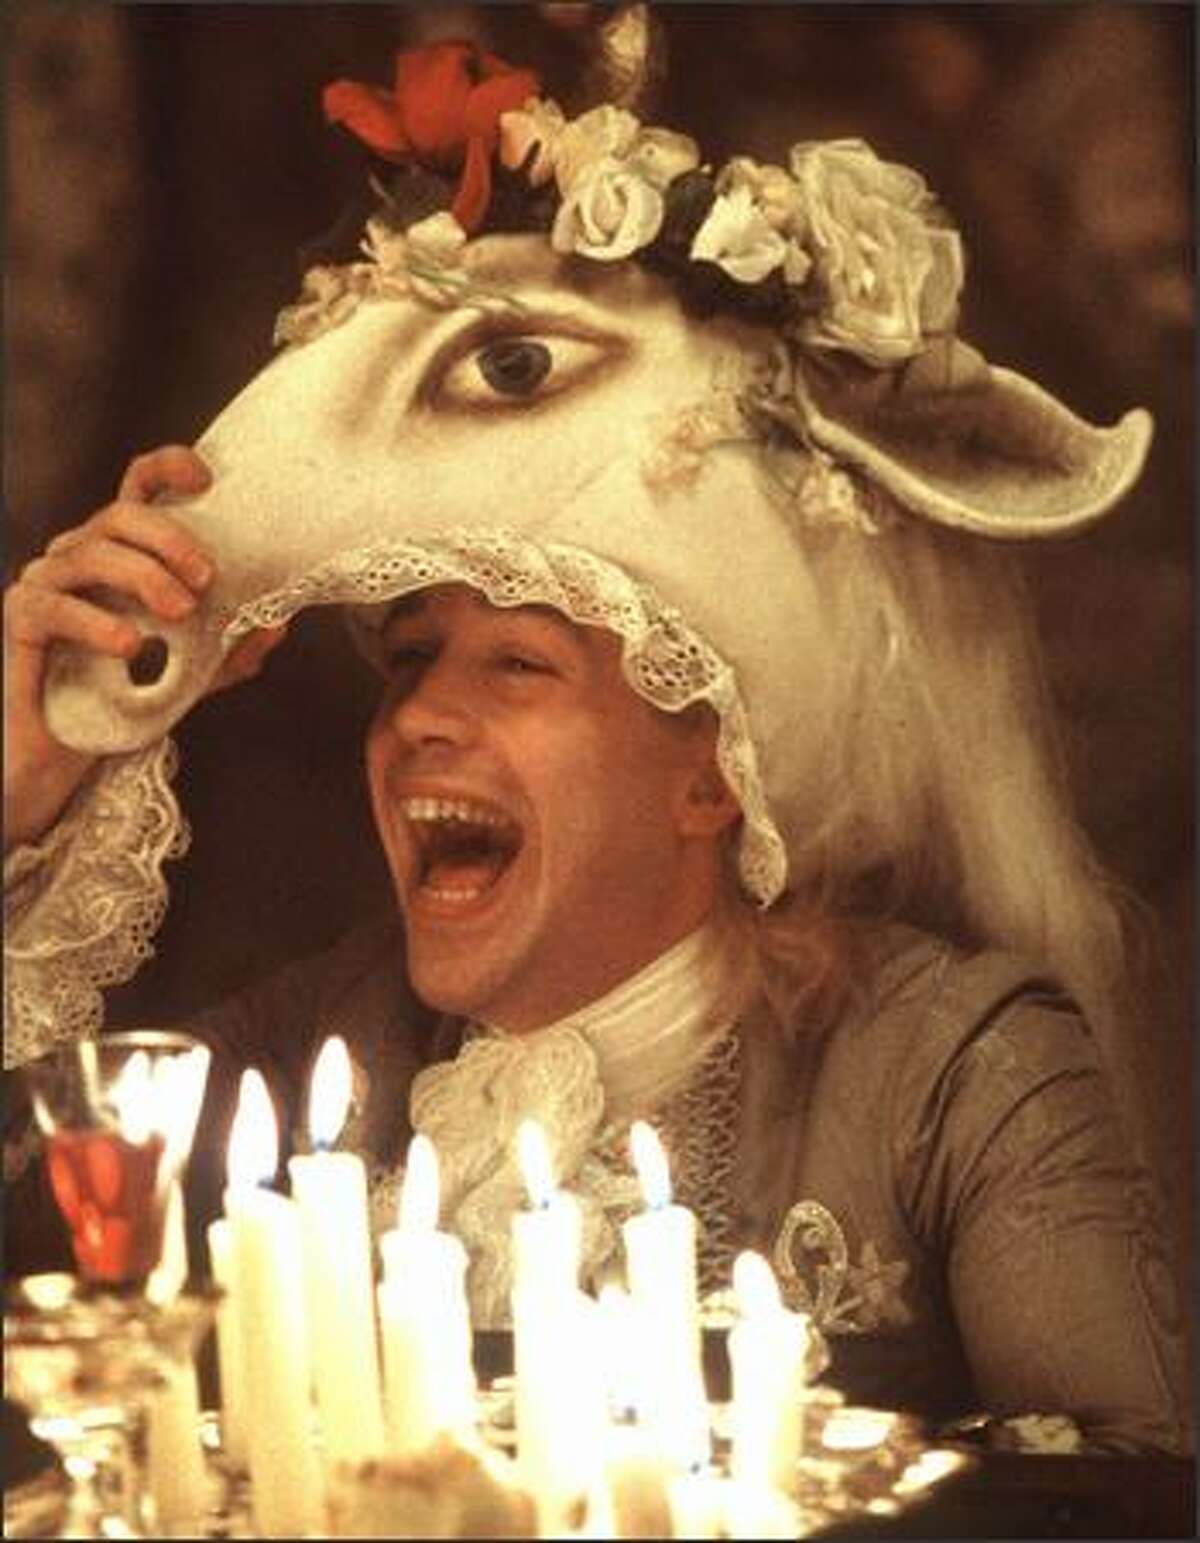 """""""Historical Hotties"""": Wolfgang Amadeus Mozart, the famed 18th century composer. We tried to find a photo of Austrian rock star Falco, who wrote and performed the hit """"Rock Me Amadeus"""" in 1986, but had to settle for actor Tom Hulce playing the title role in the Oscar-winning film """"Amadeus."""""""